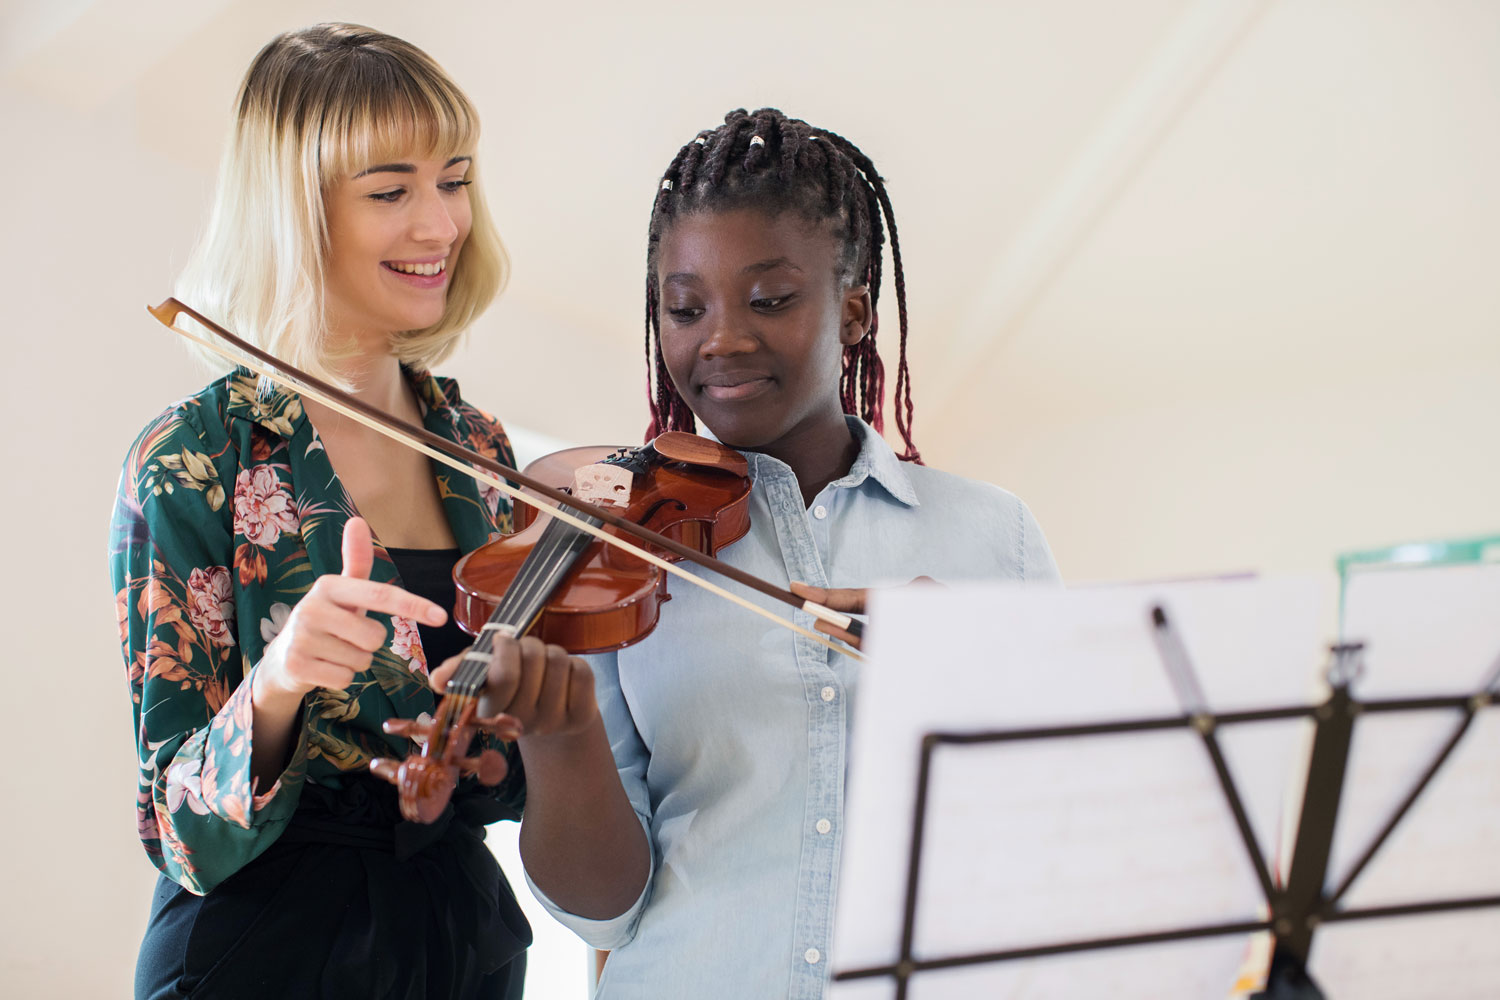 violin instructor teaching her young female student